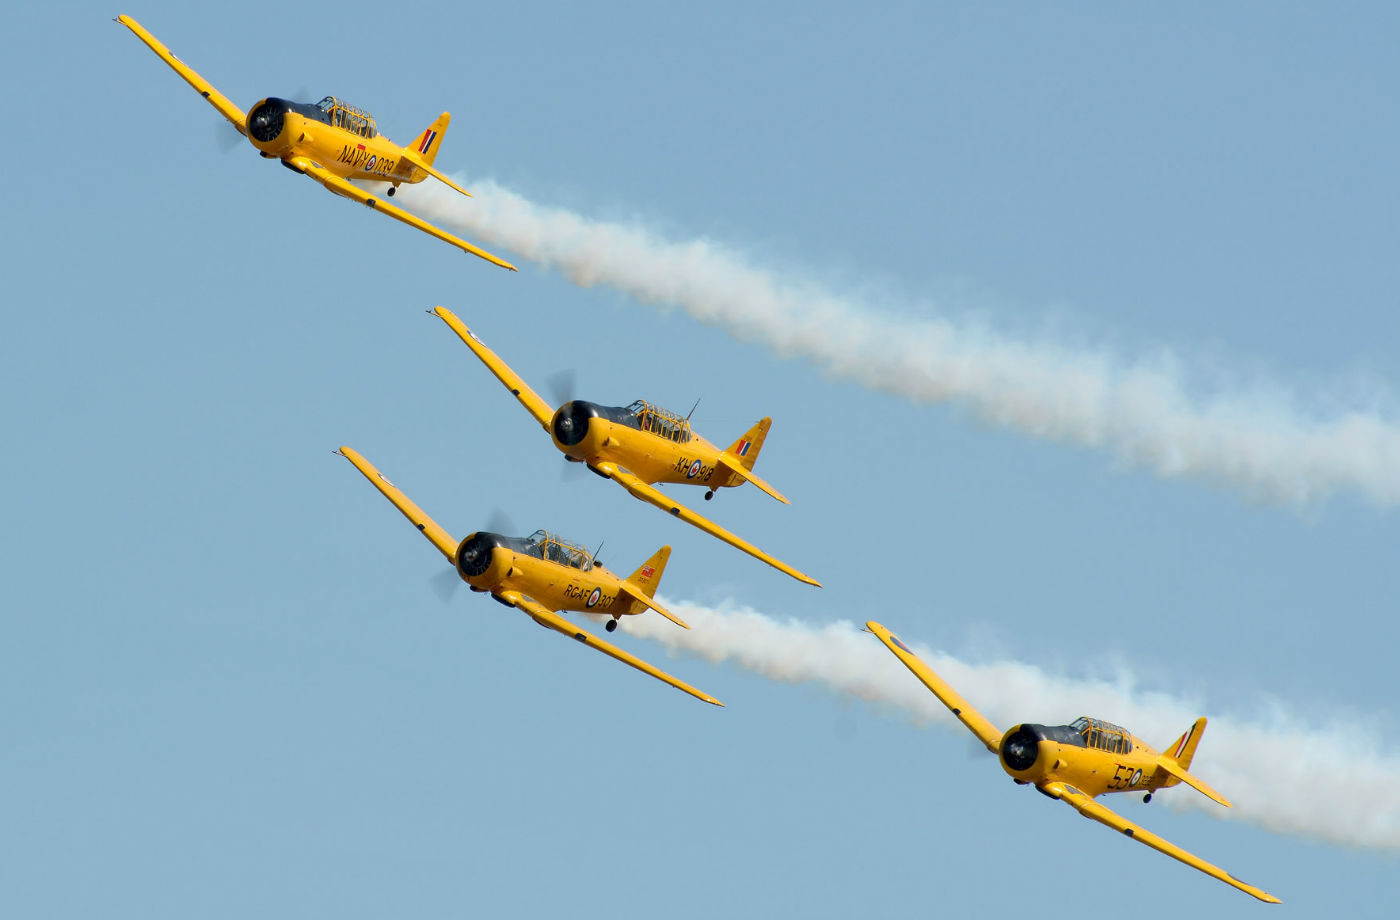 Painted yellow in their Royal Canadian Air Force markings, the Harvards never fail to attract attention. Billowing trails of white smoke, the growl of the Pratt and Whitney R-1340 radial engine and a well-choreographed routine have made CHAT a popular airshow act. Eric Dumigan Photo